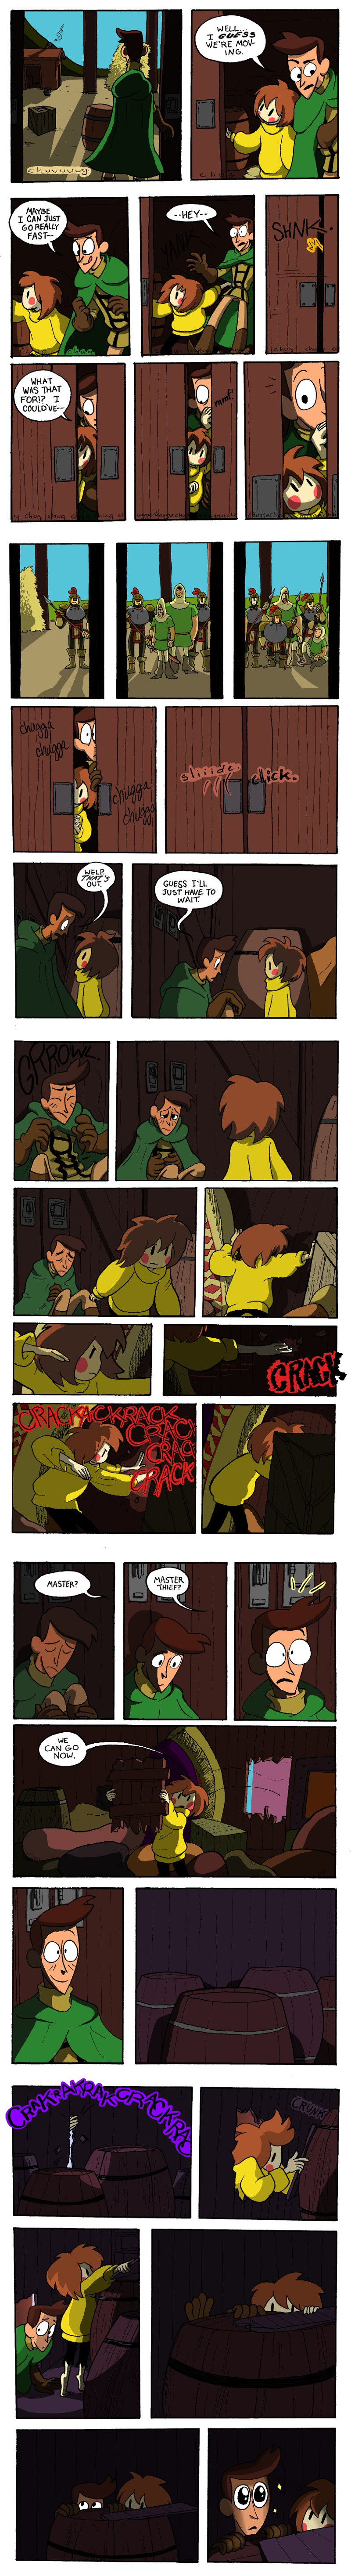 pages11-15